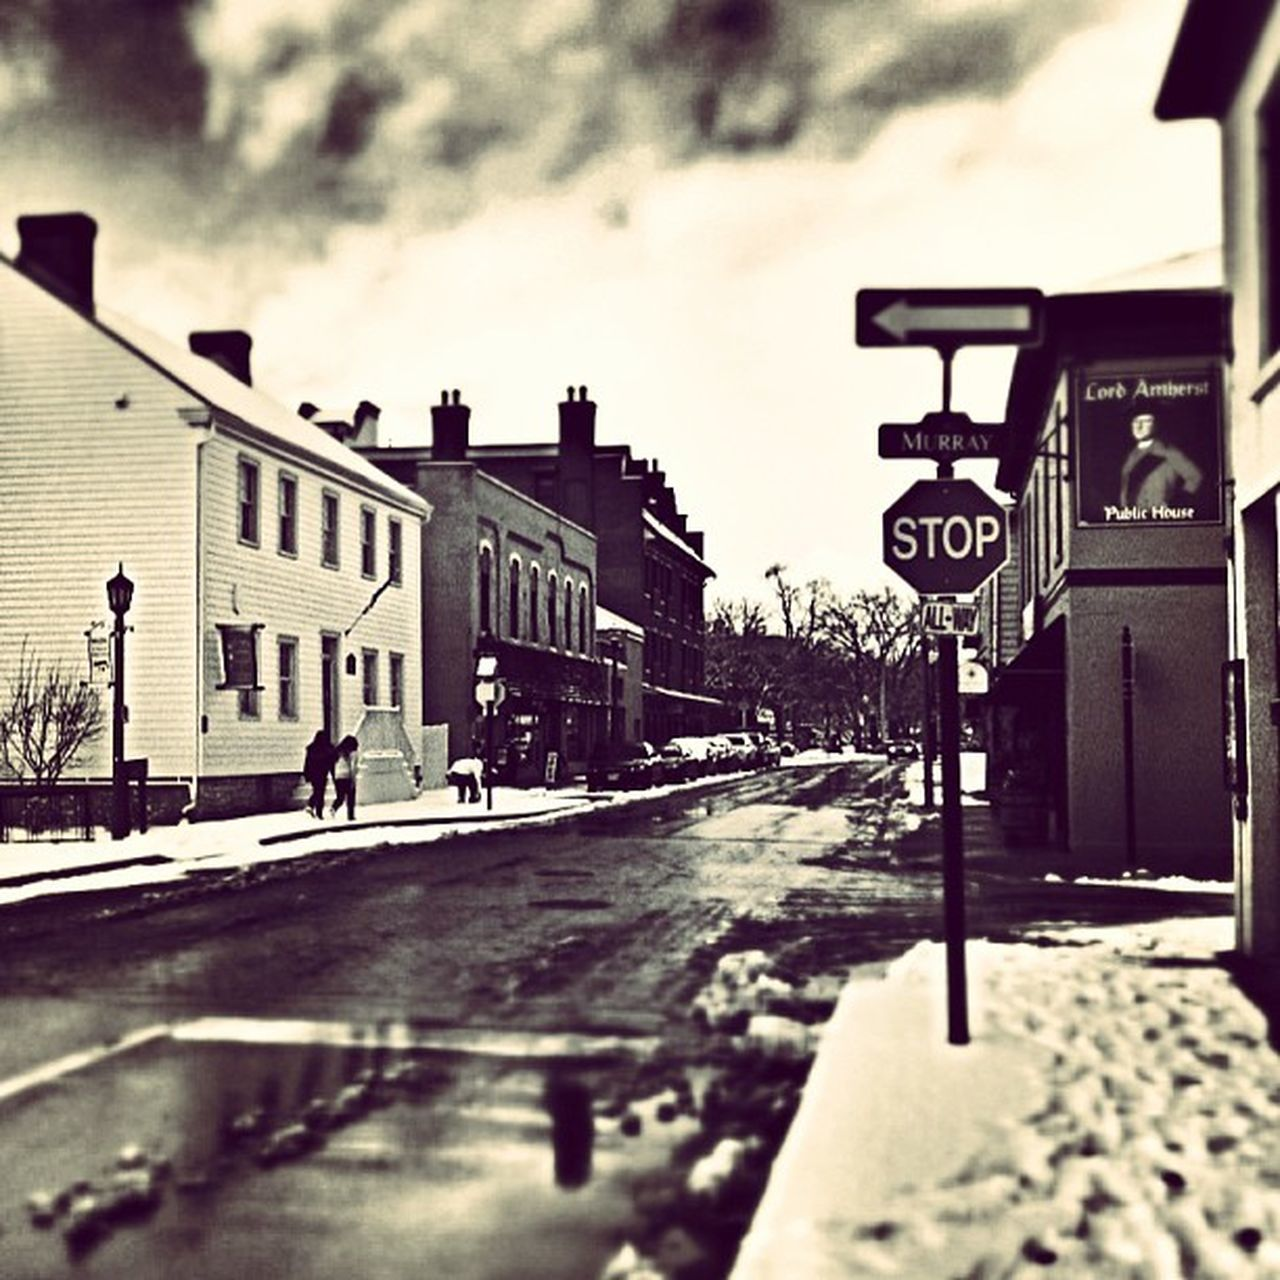 Dalhousie Amherstburg Snapseed Mytown Winter Cold Winter ❄⛄ Snapseed Editing  Hdr Edit